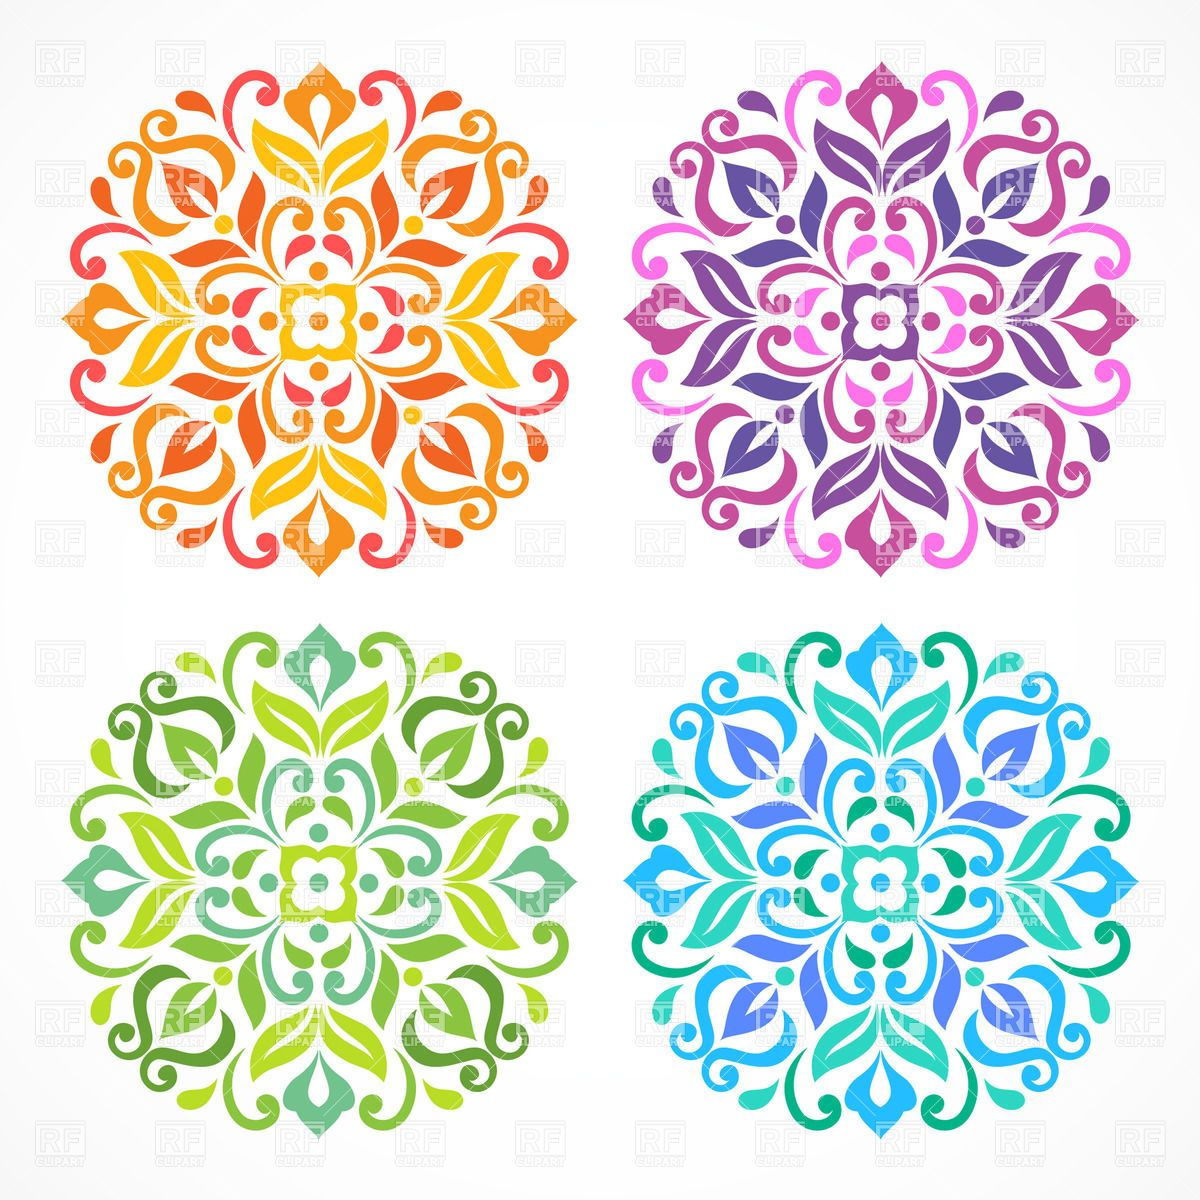 Pictures of Mandala Simple Flower - #rock-cafe